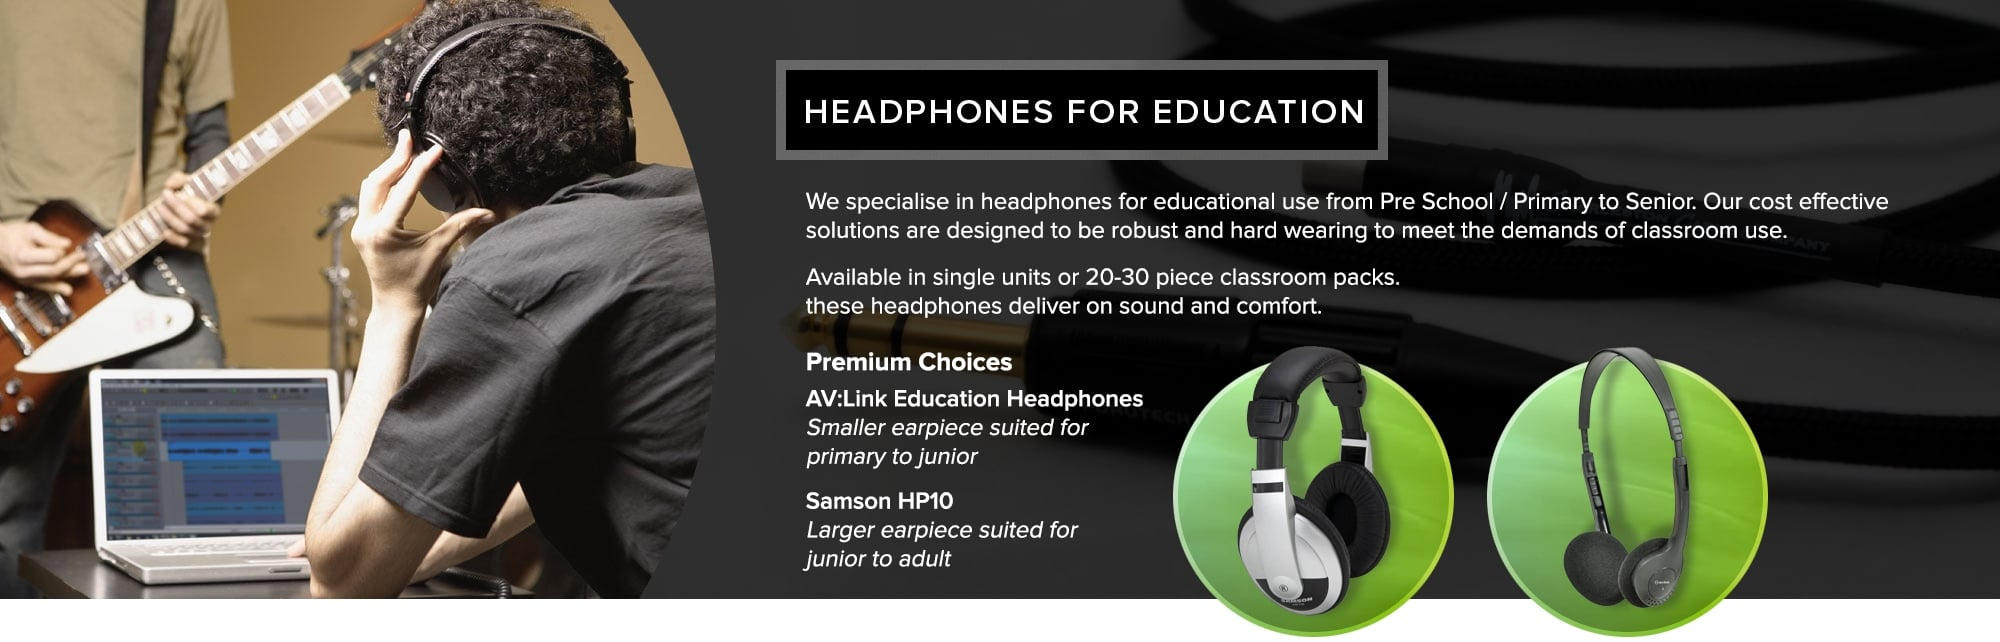 Headphones For Education